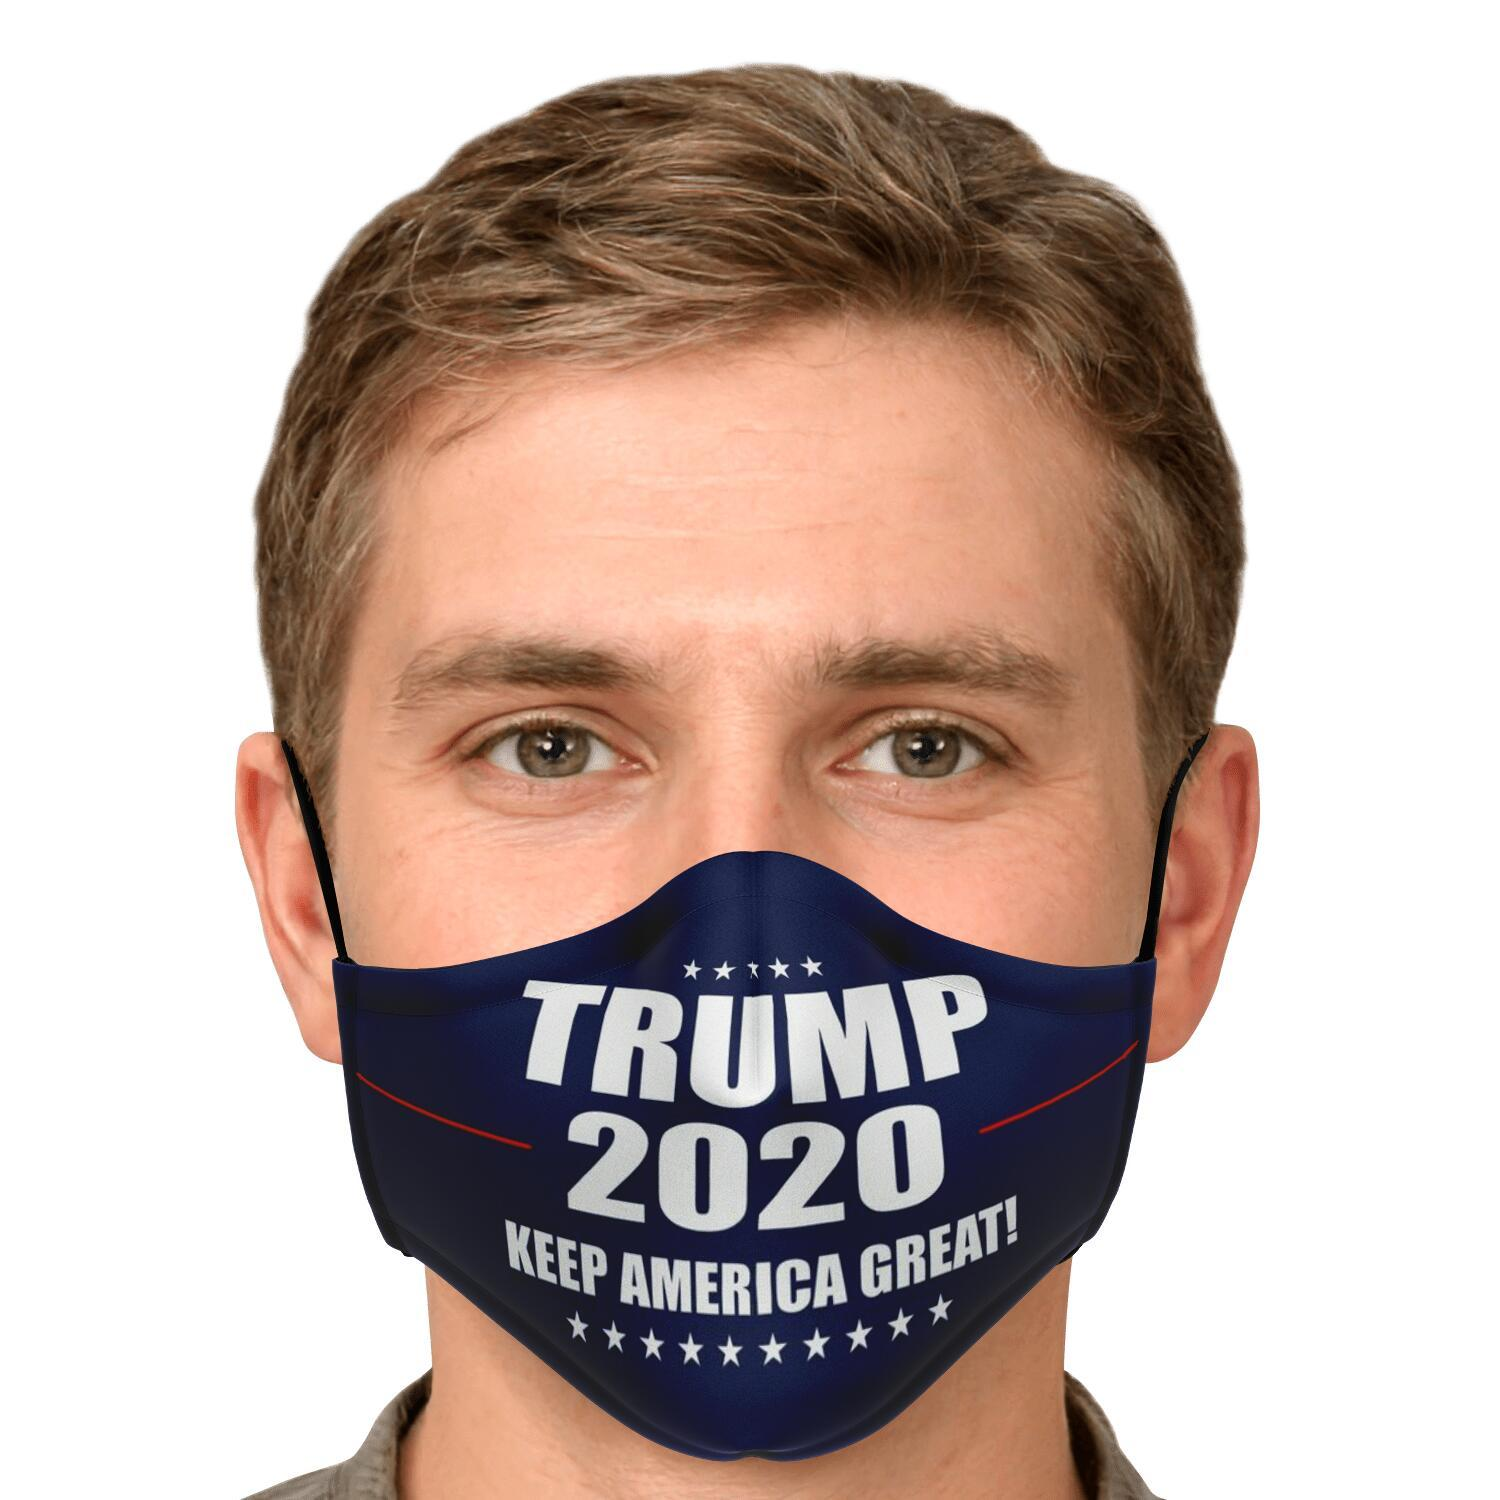 Keep America Great Trump 2020 Face Mask 4